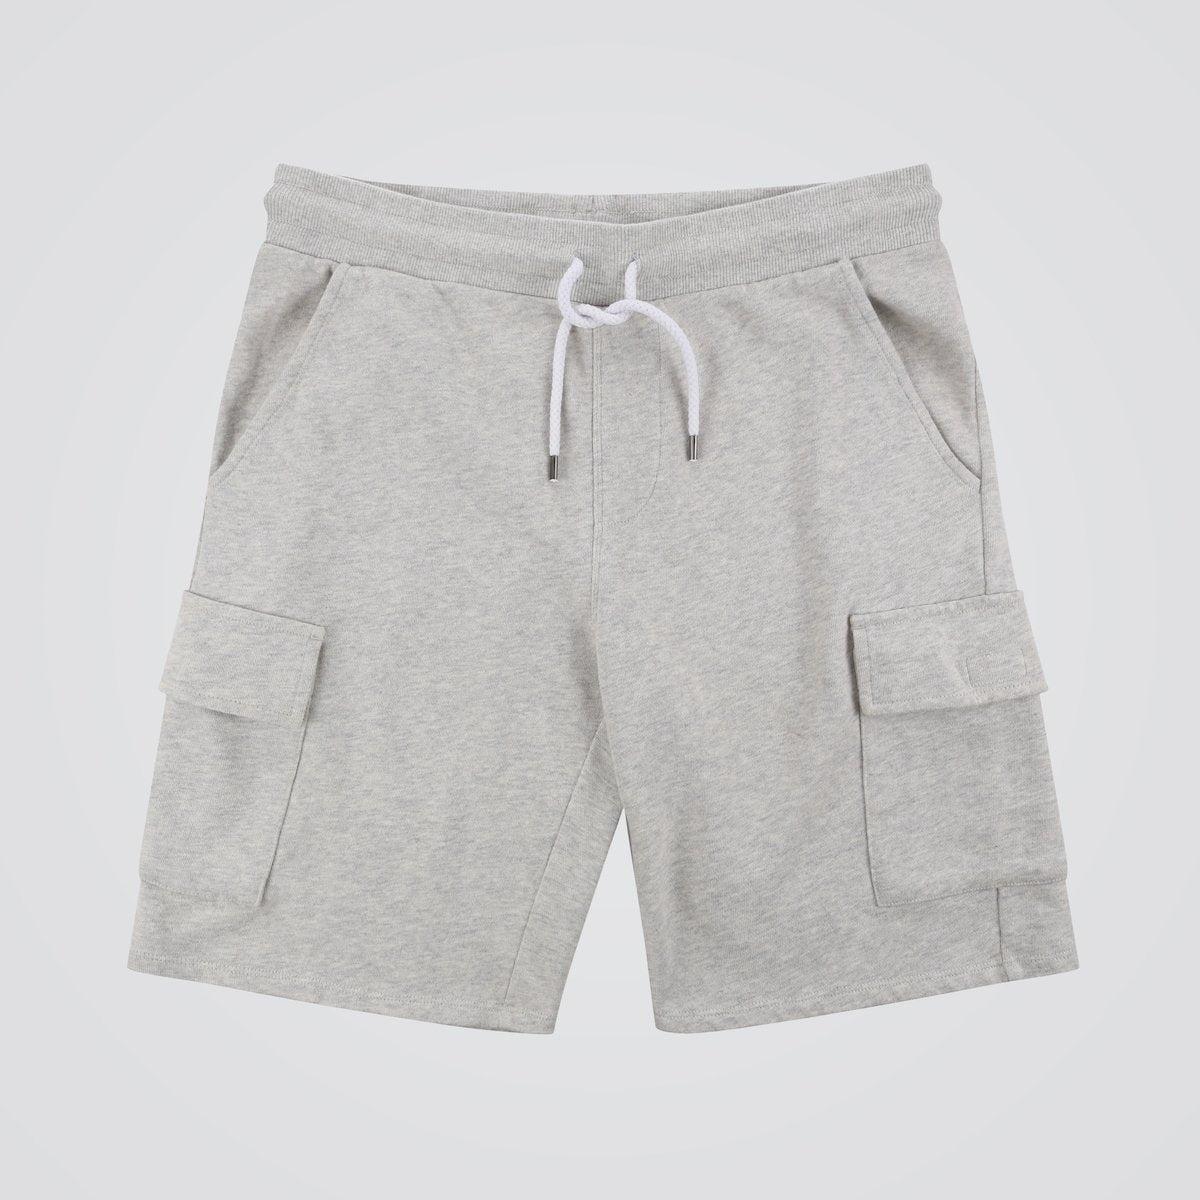 Tourer Jog Shorts - Grey Marl image 7